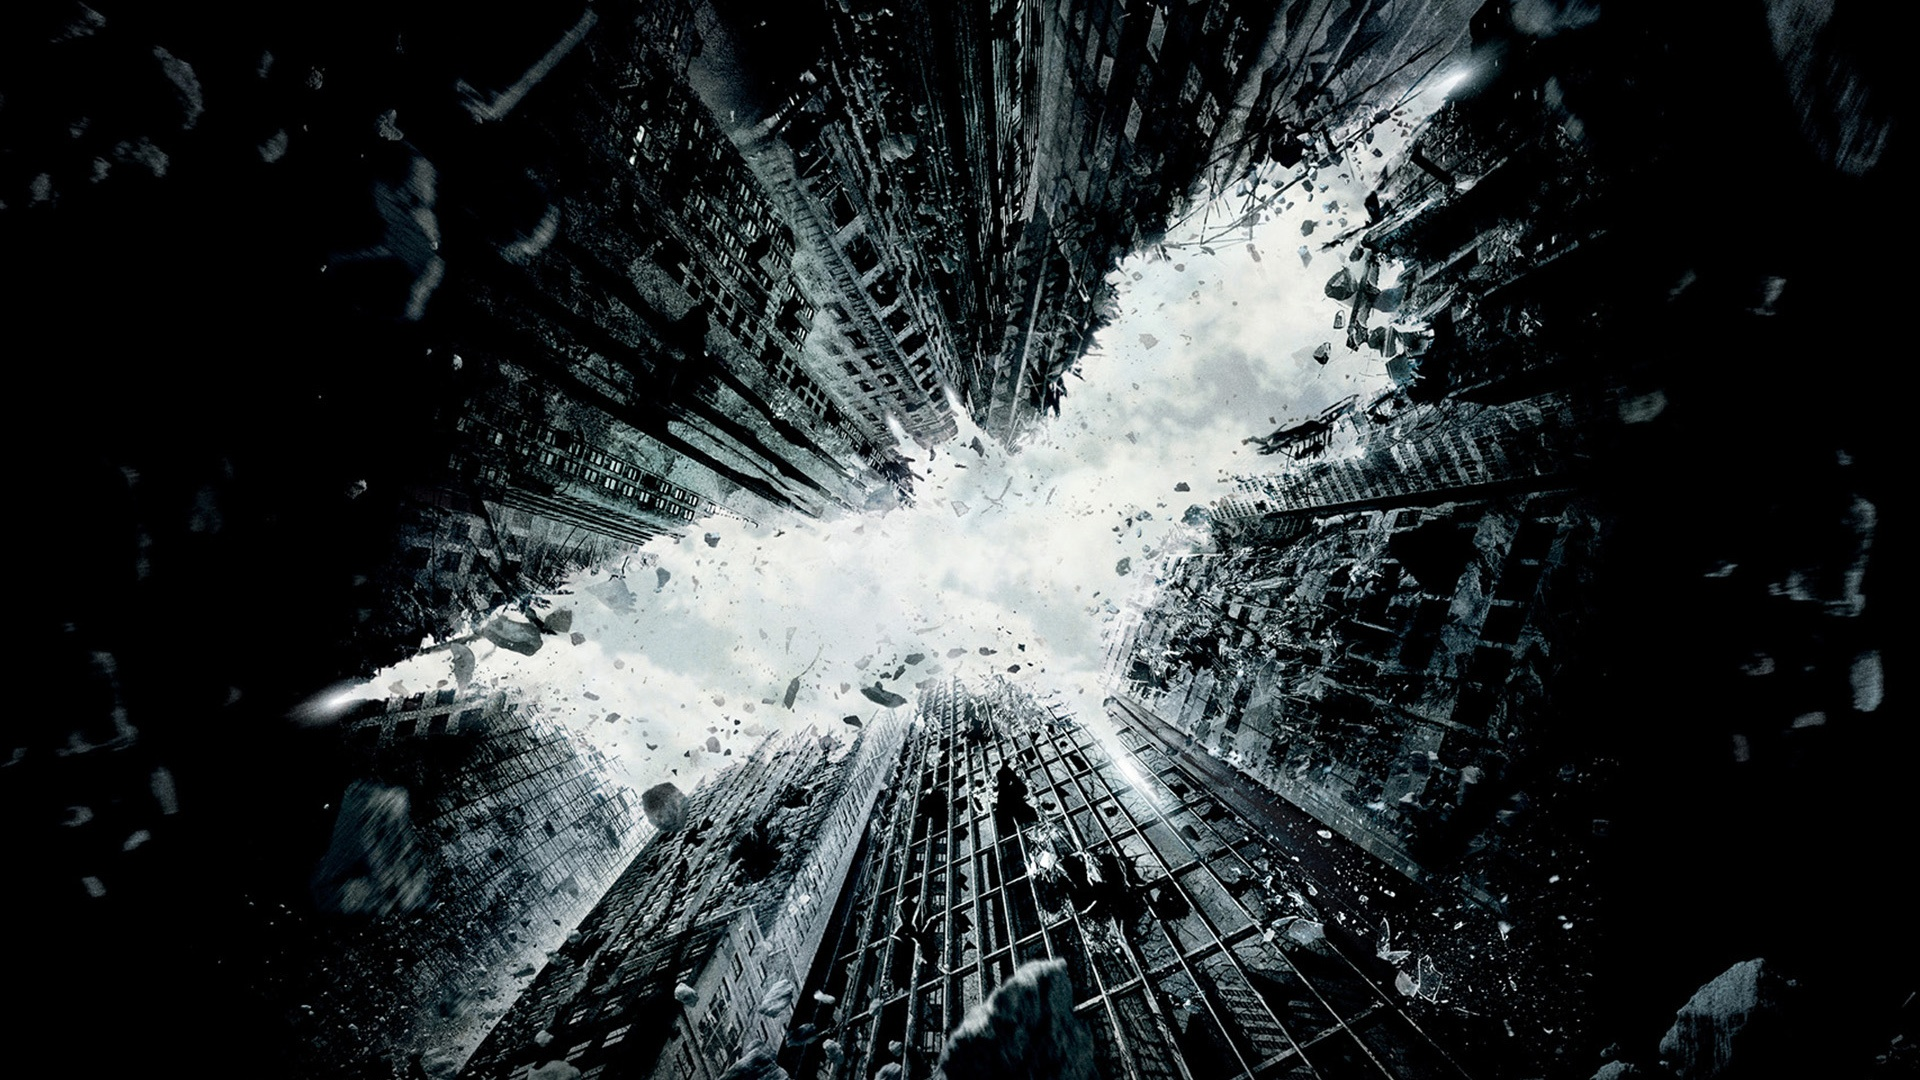 the dark knight rises 2012 1920x1080 10 000 fonds d